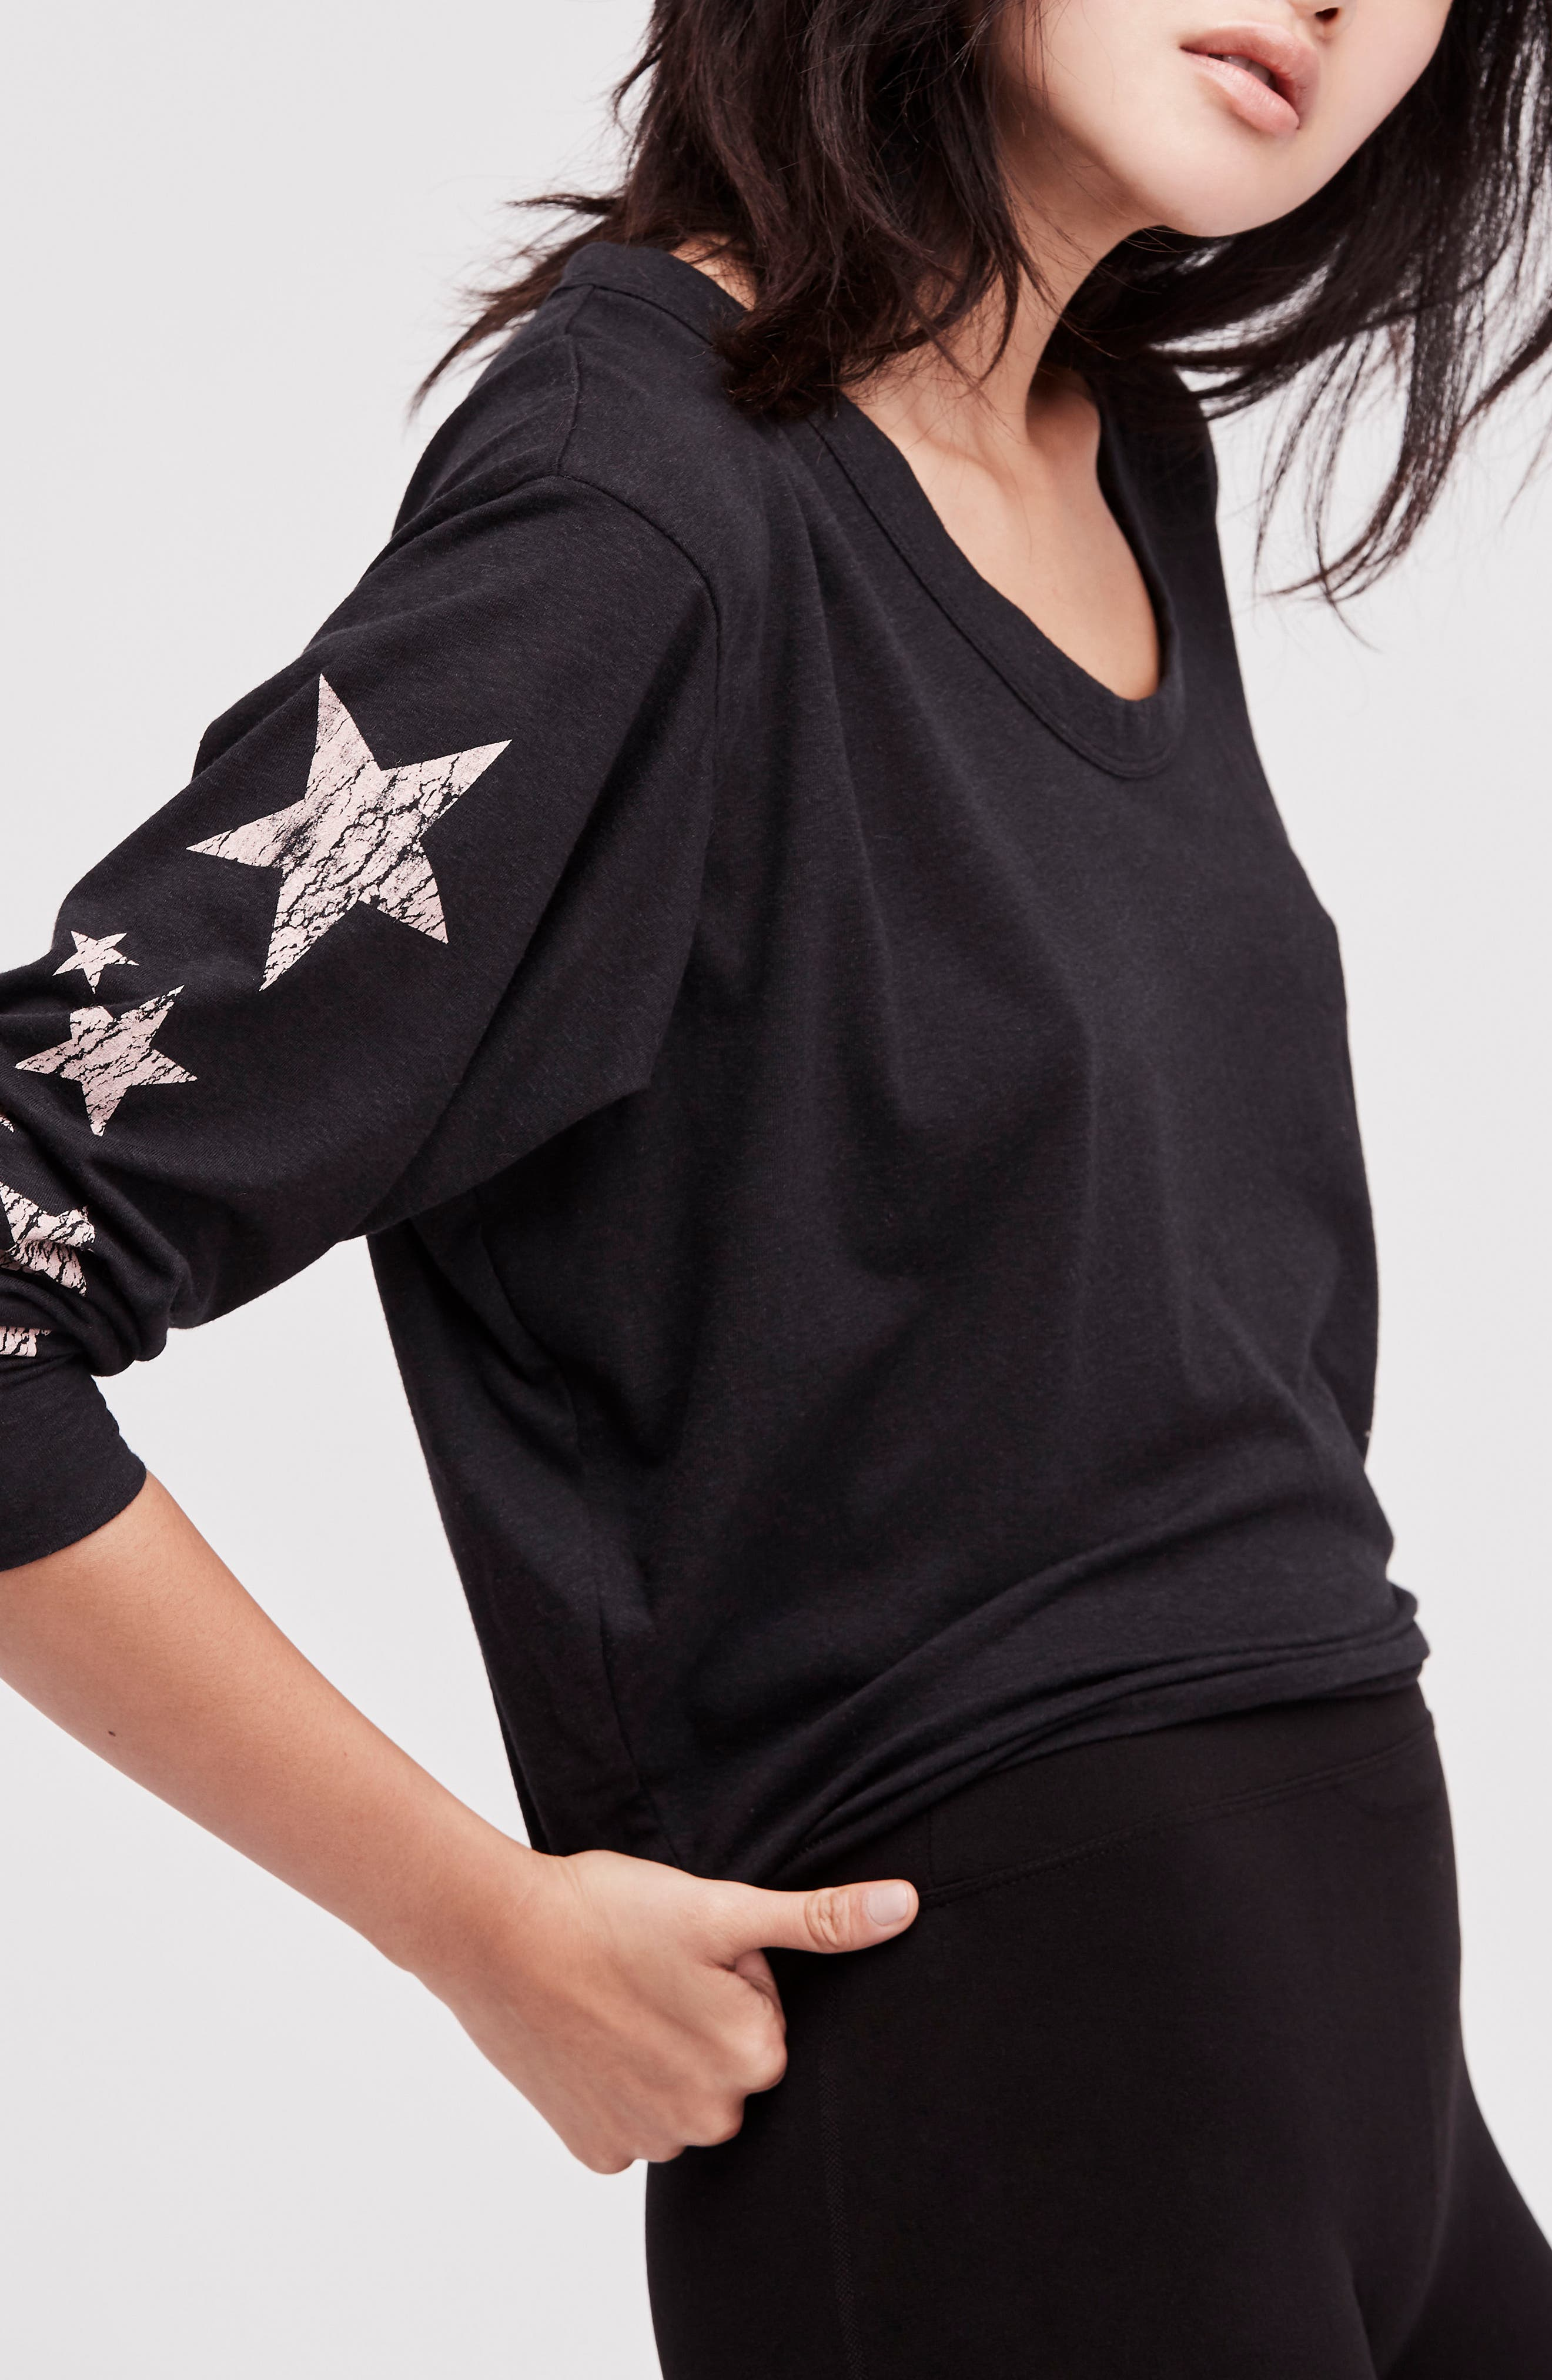 FREE PEOPLE MOVEMENT, Melrose Star Graphic Top, Alternate thumbnail 7, color, 001